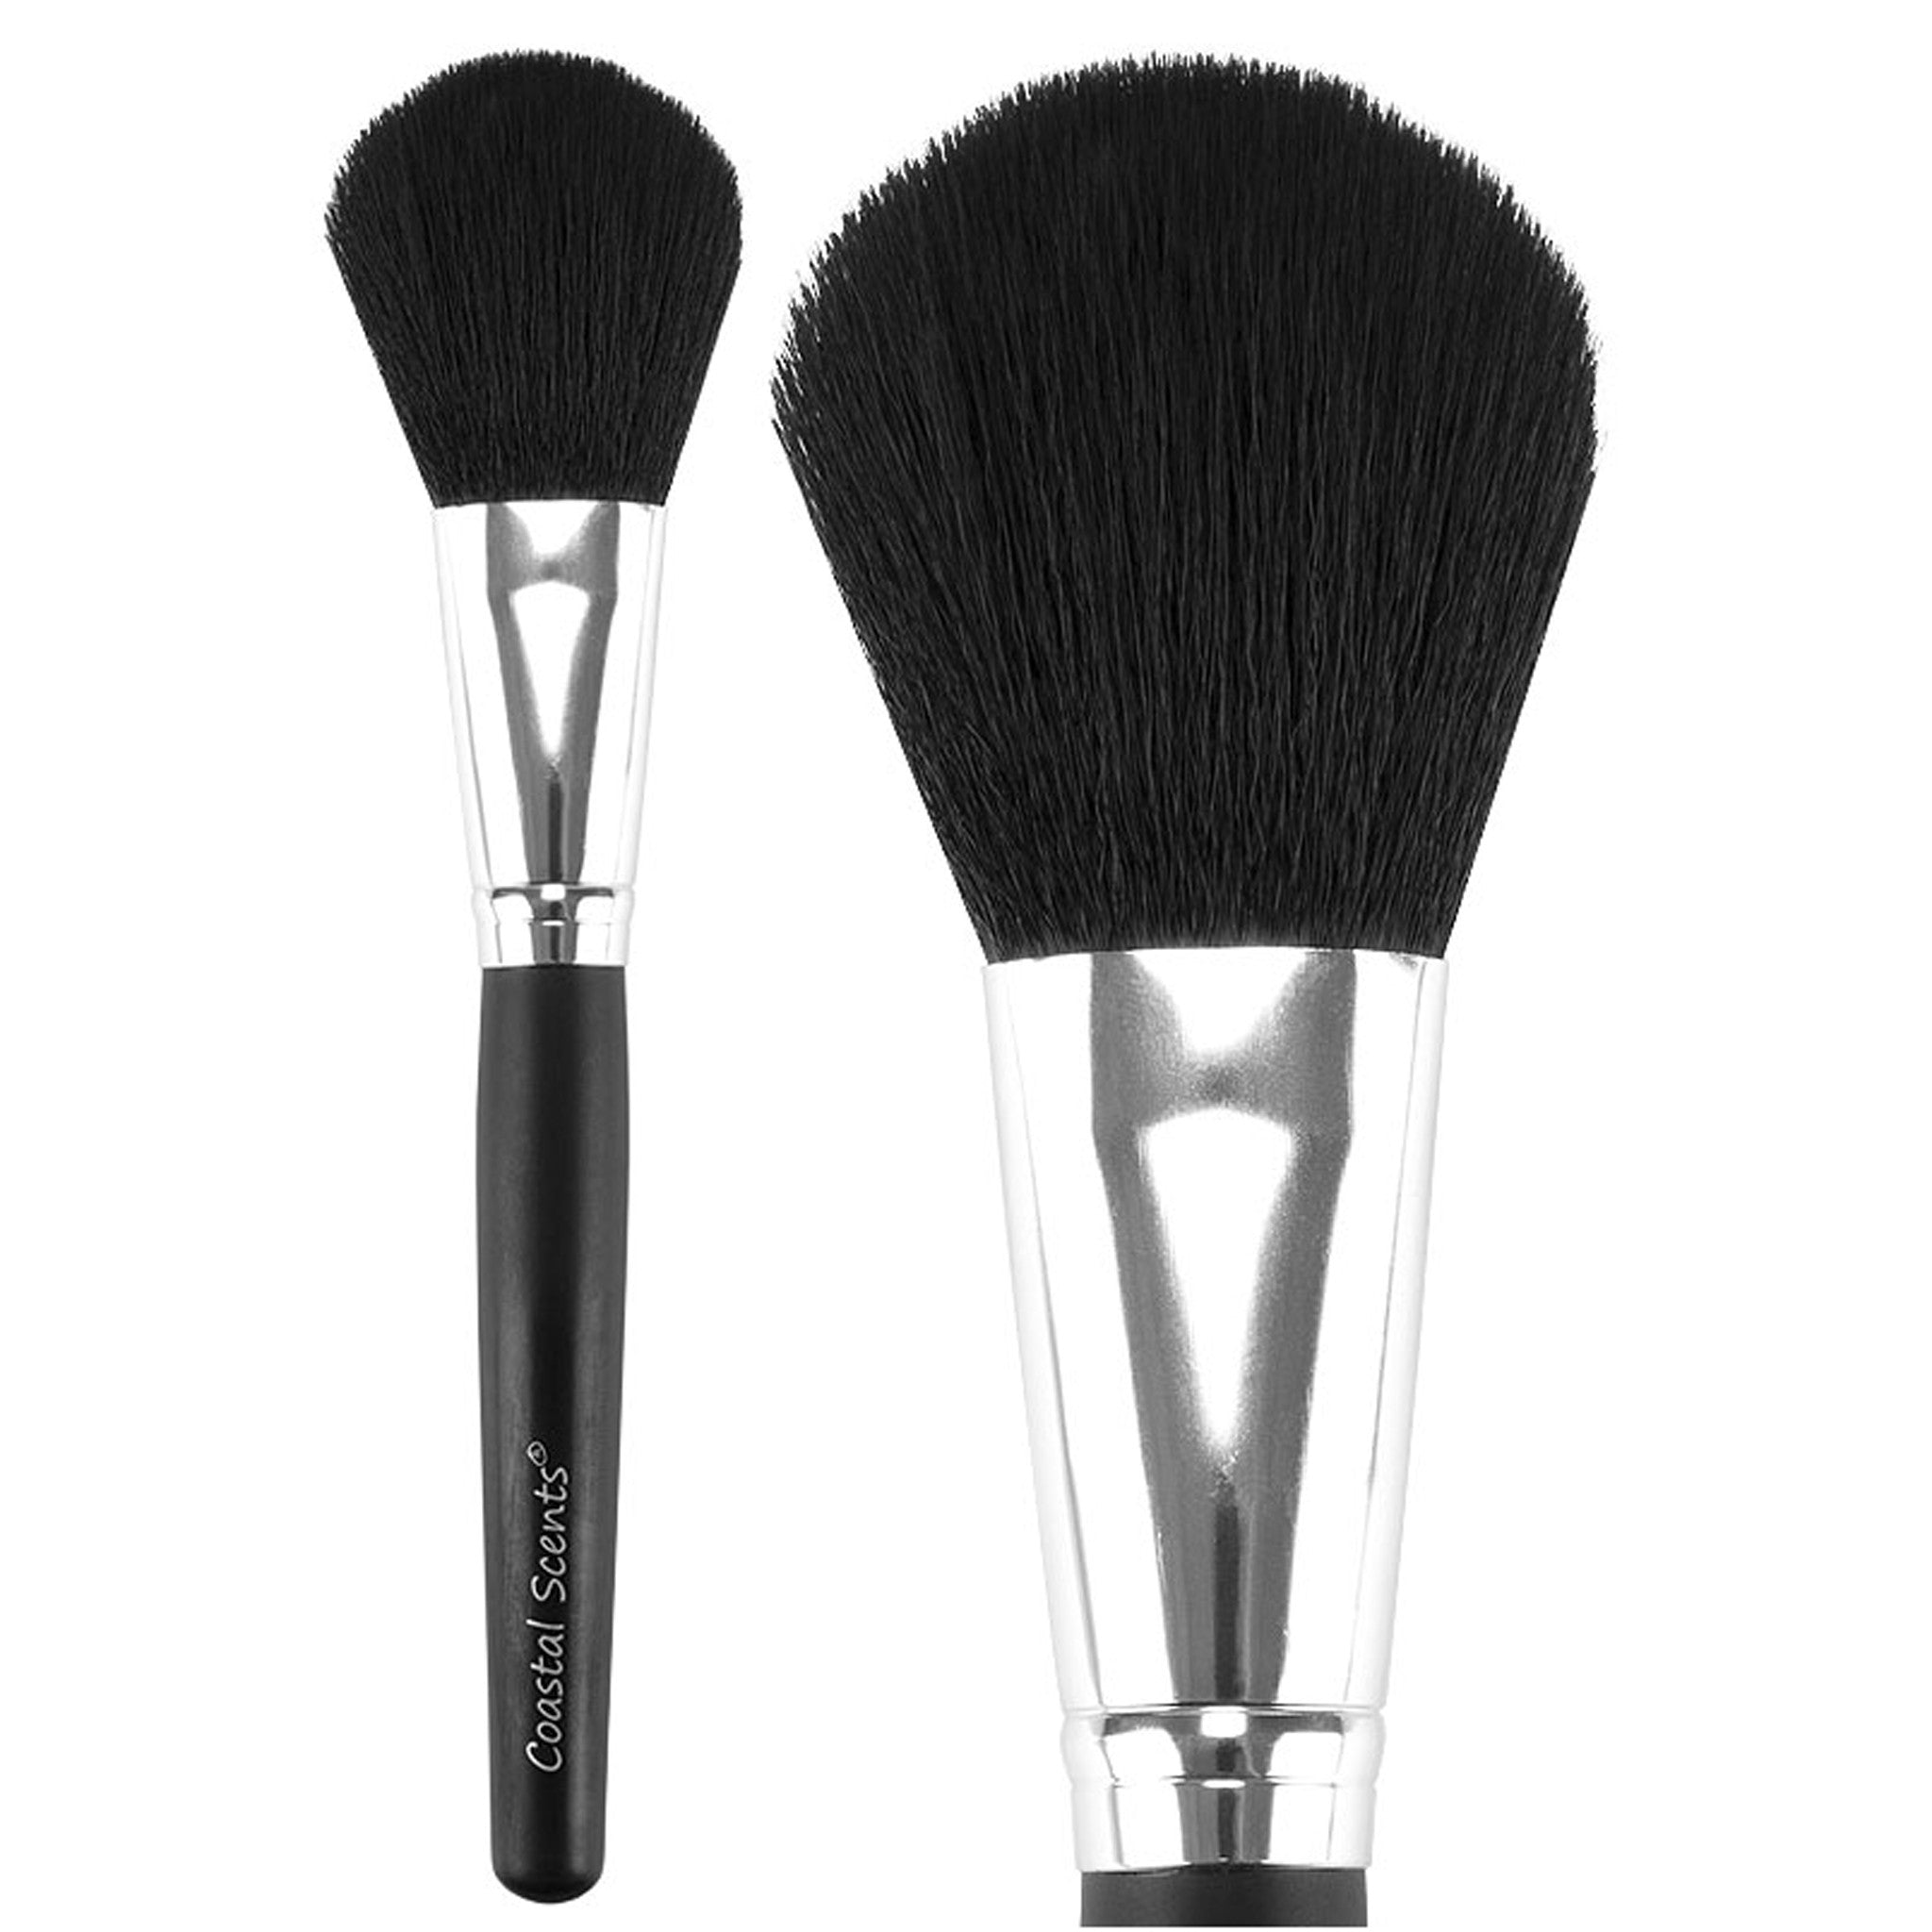 Coastal Scents coupon: Classic Flat Powder Brush Synthetic